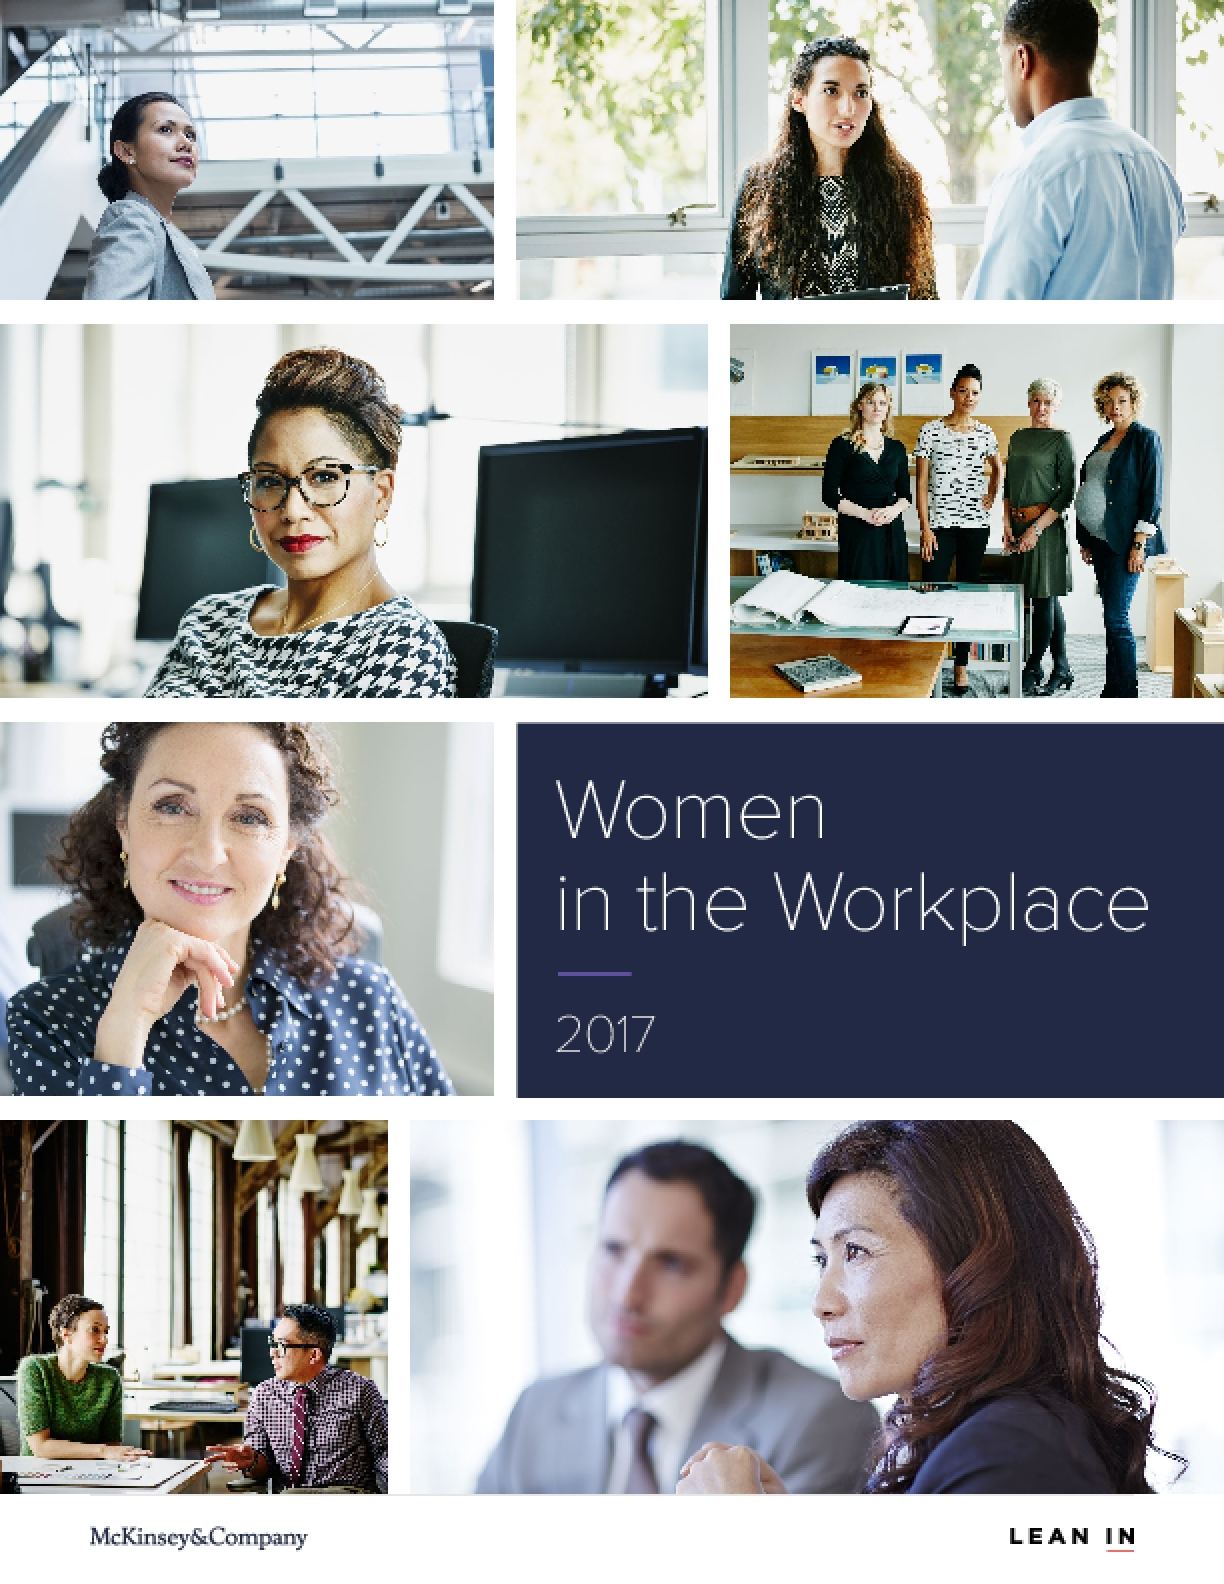 Women in the Workplace 2017